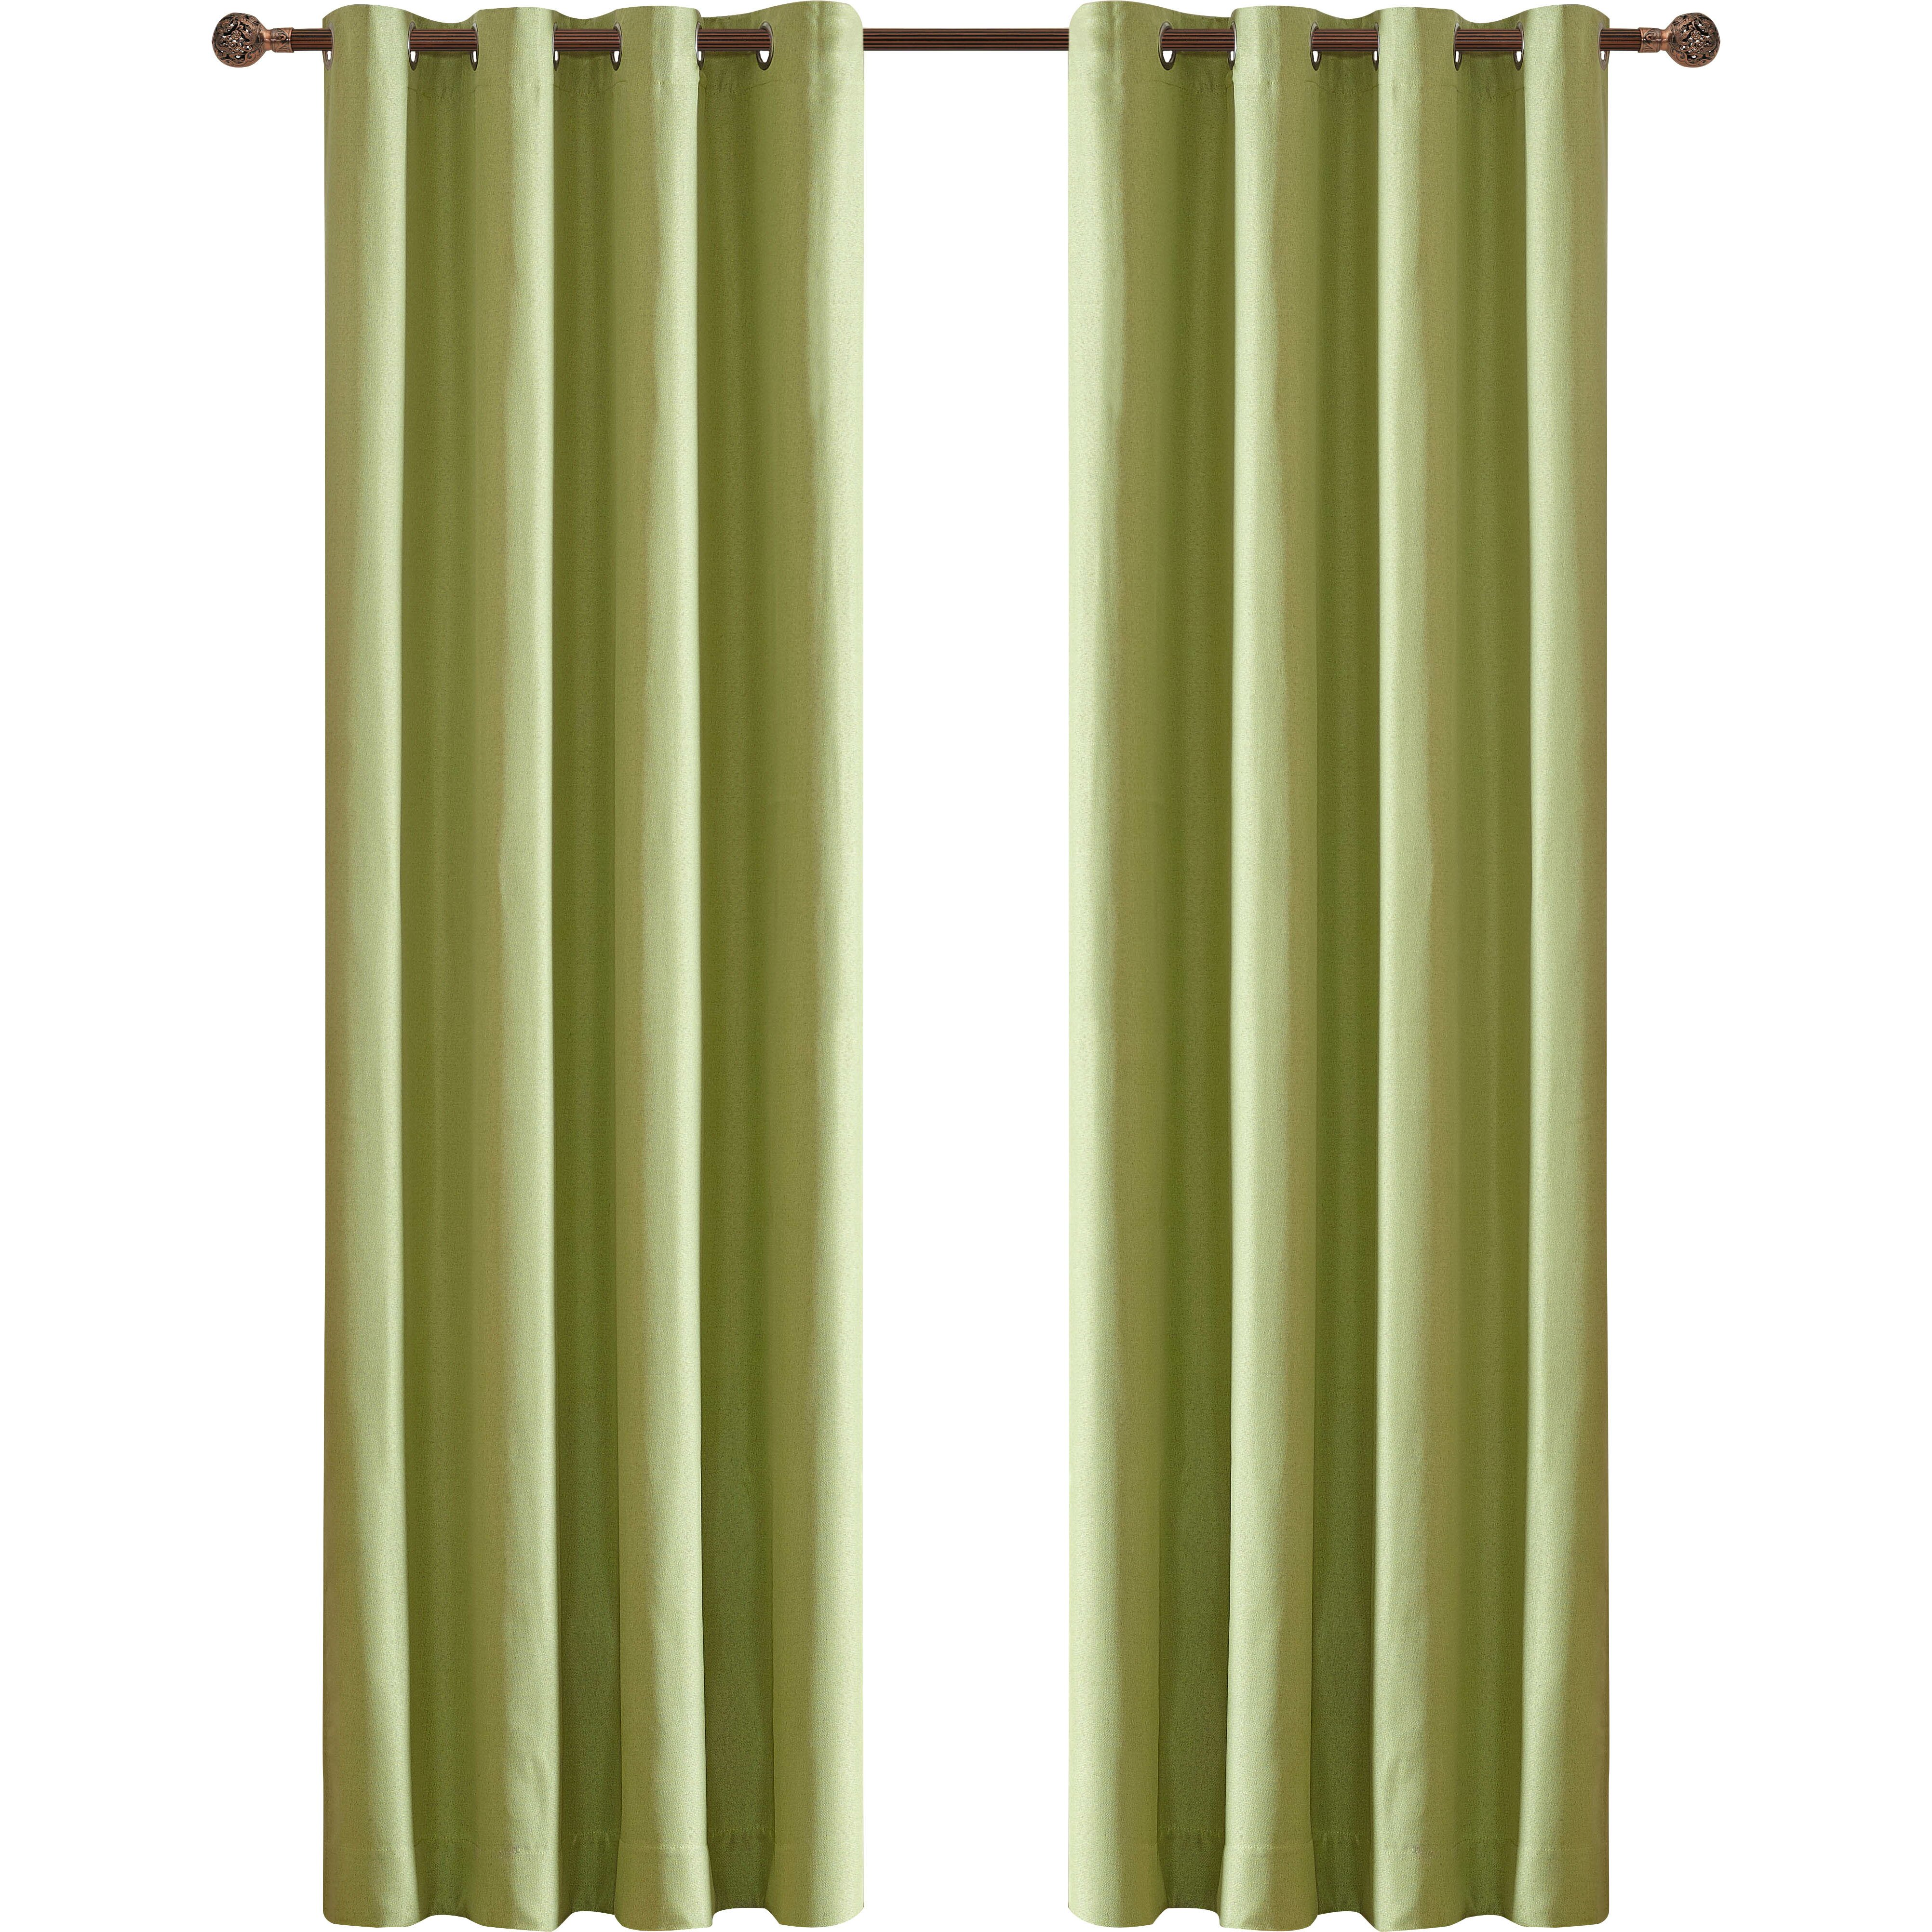 Lyndale Decor Odyssey Blackout Thermal Curtain Panels